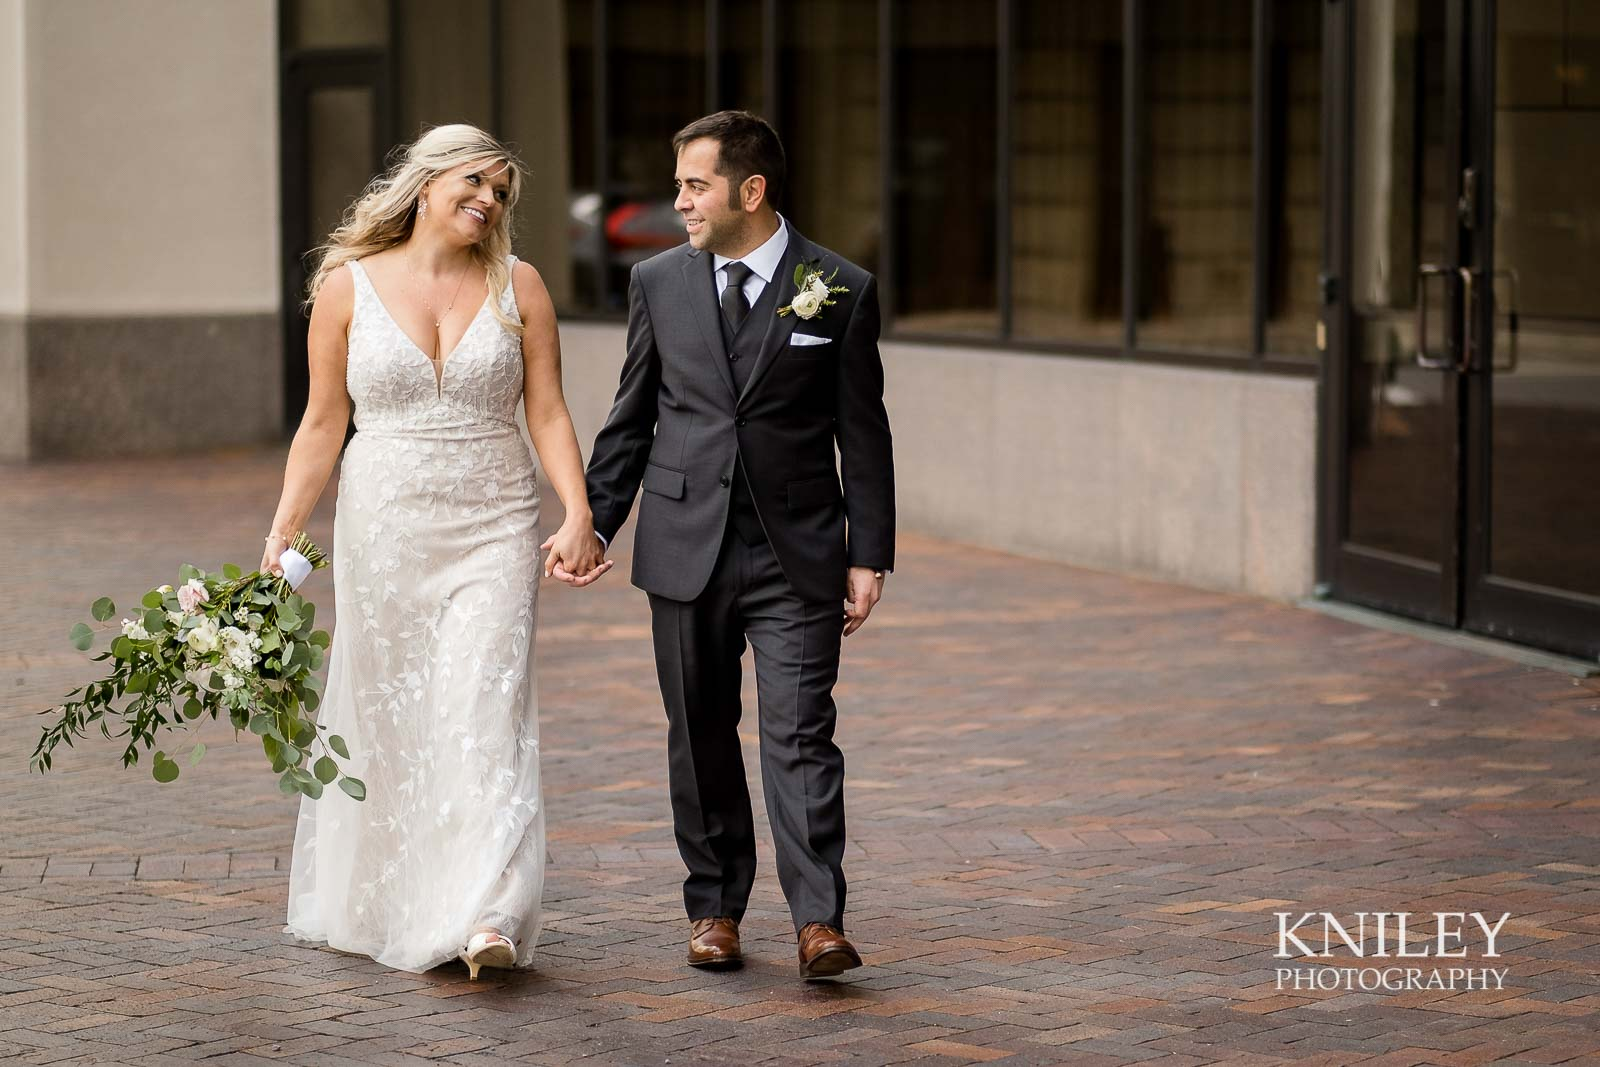 42-Max-of-Eastman-Wedding-and-Reception-Rochester-NY-Kniley-Photography.jpg